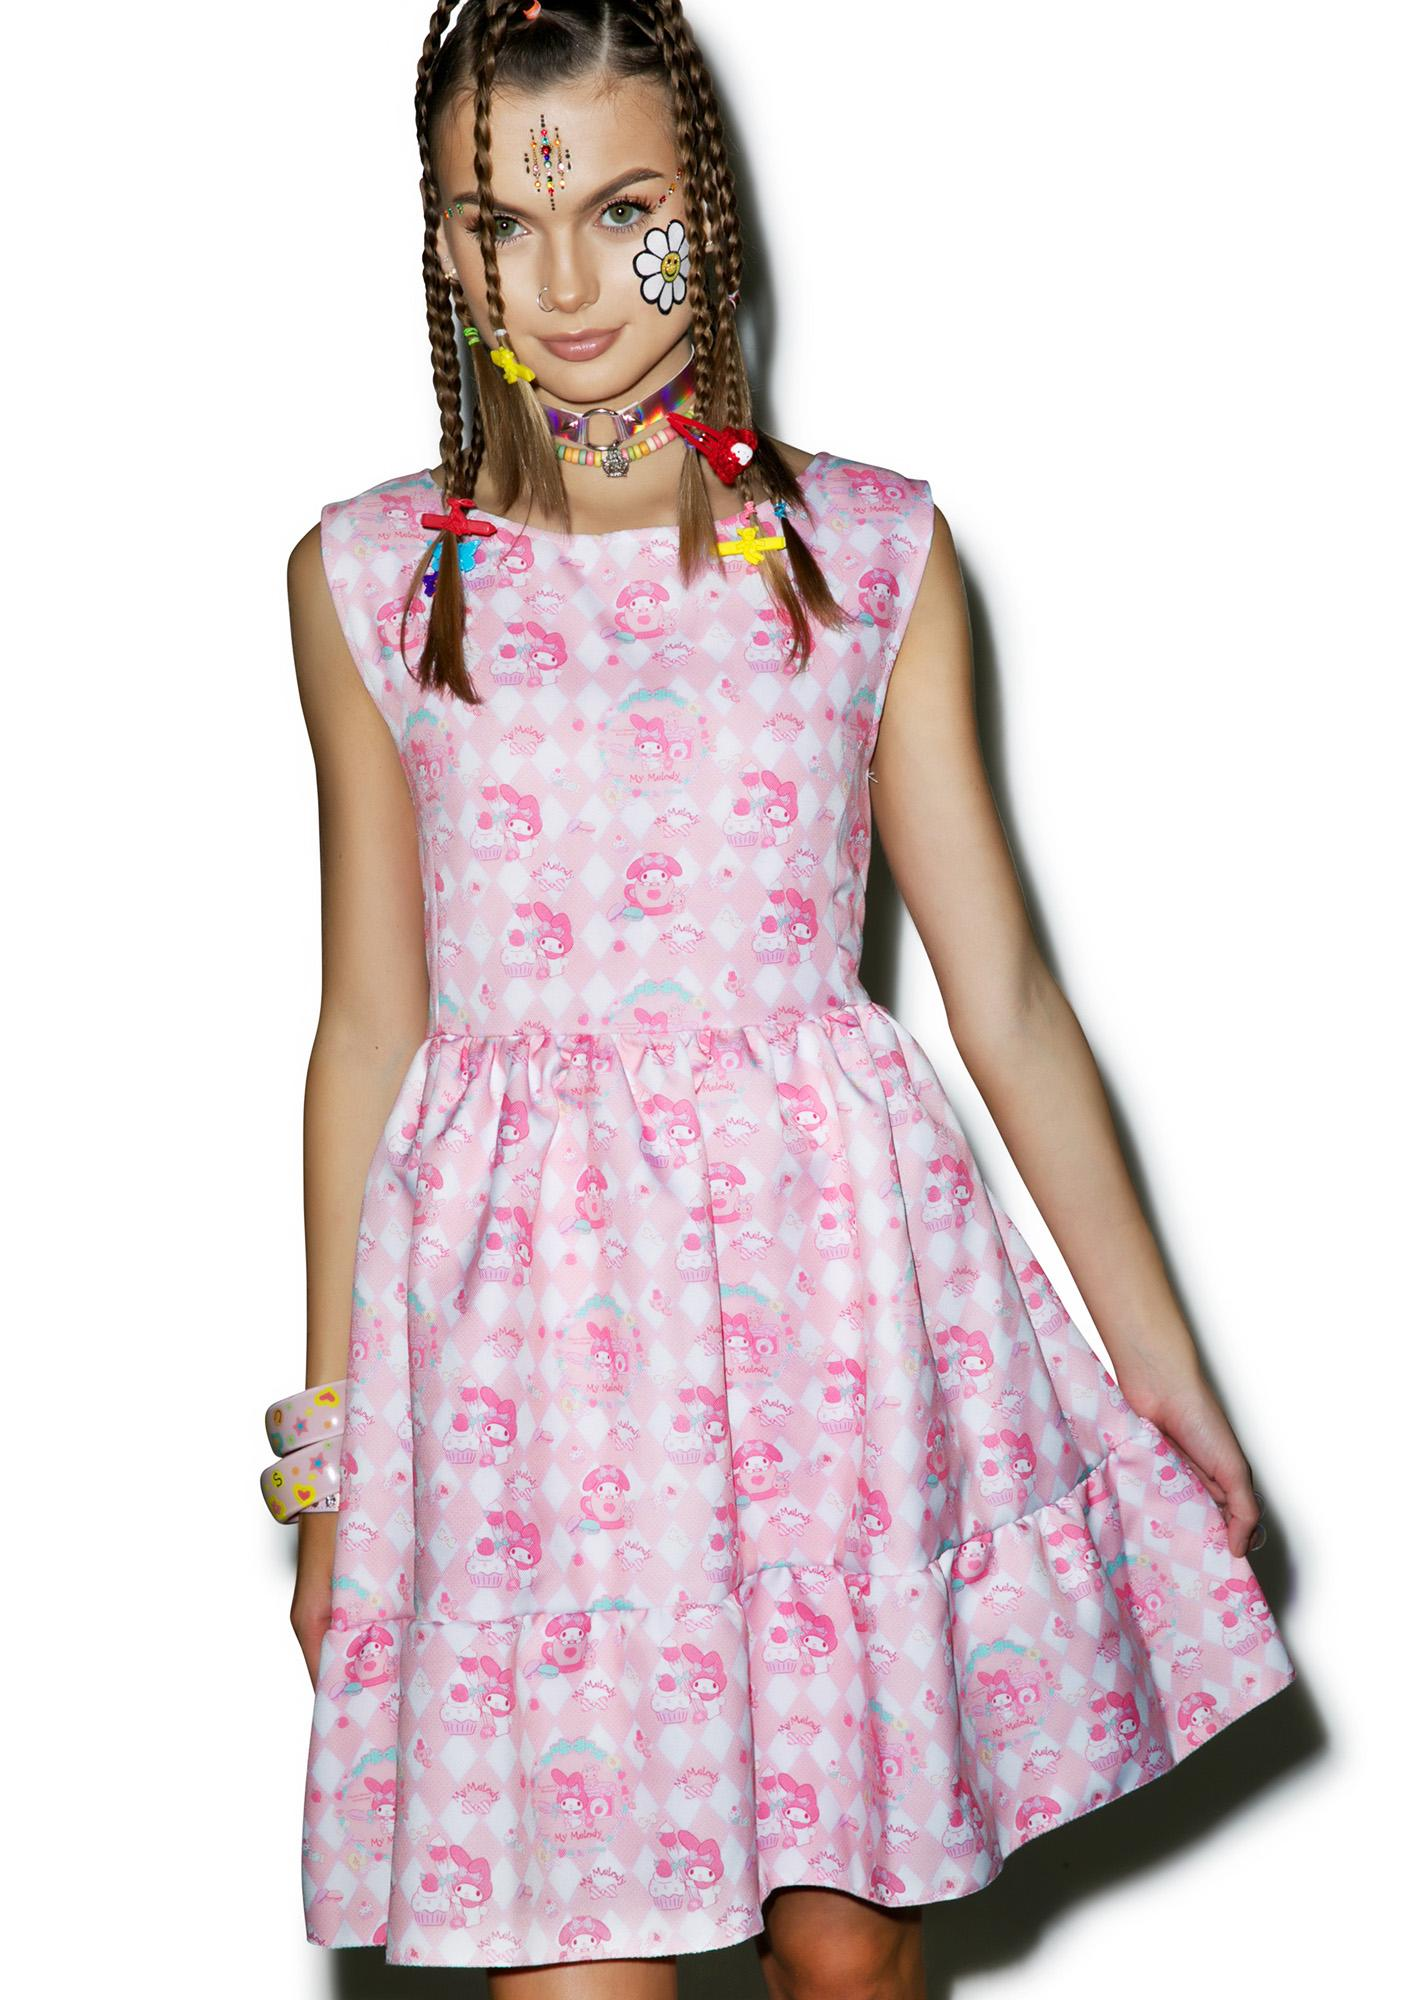 Japan L.A. My Melody Sugar Dream Dress